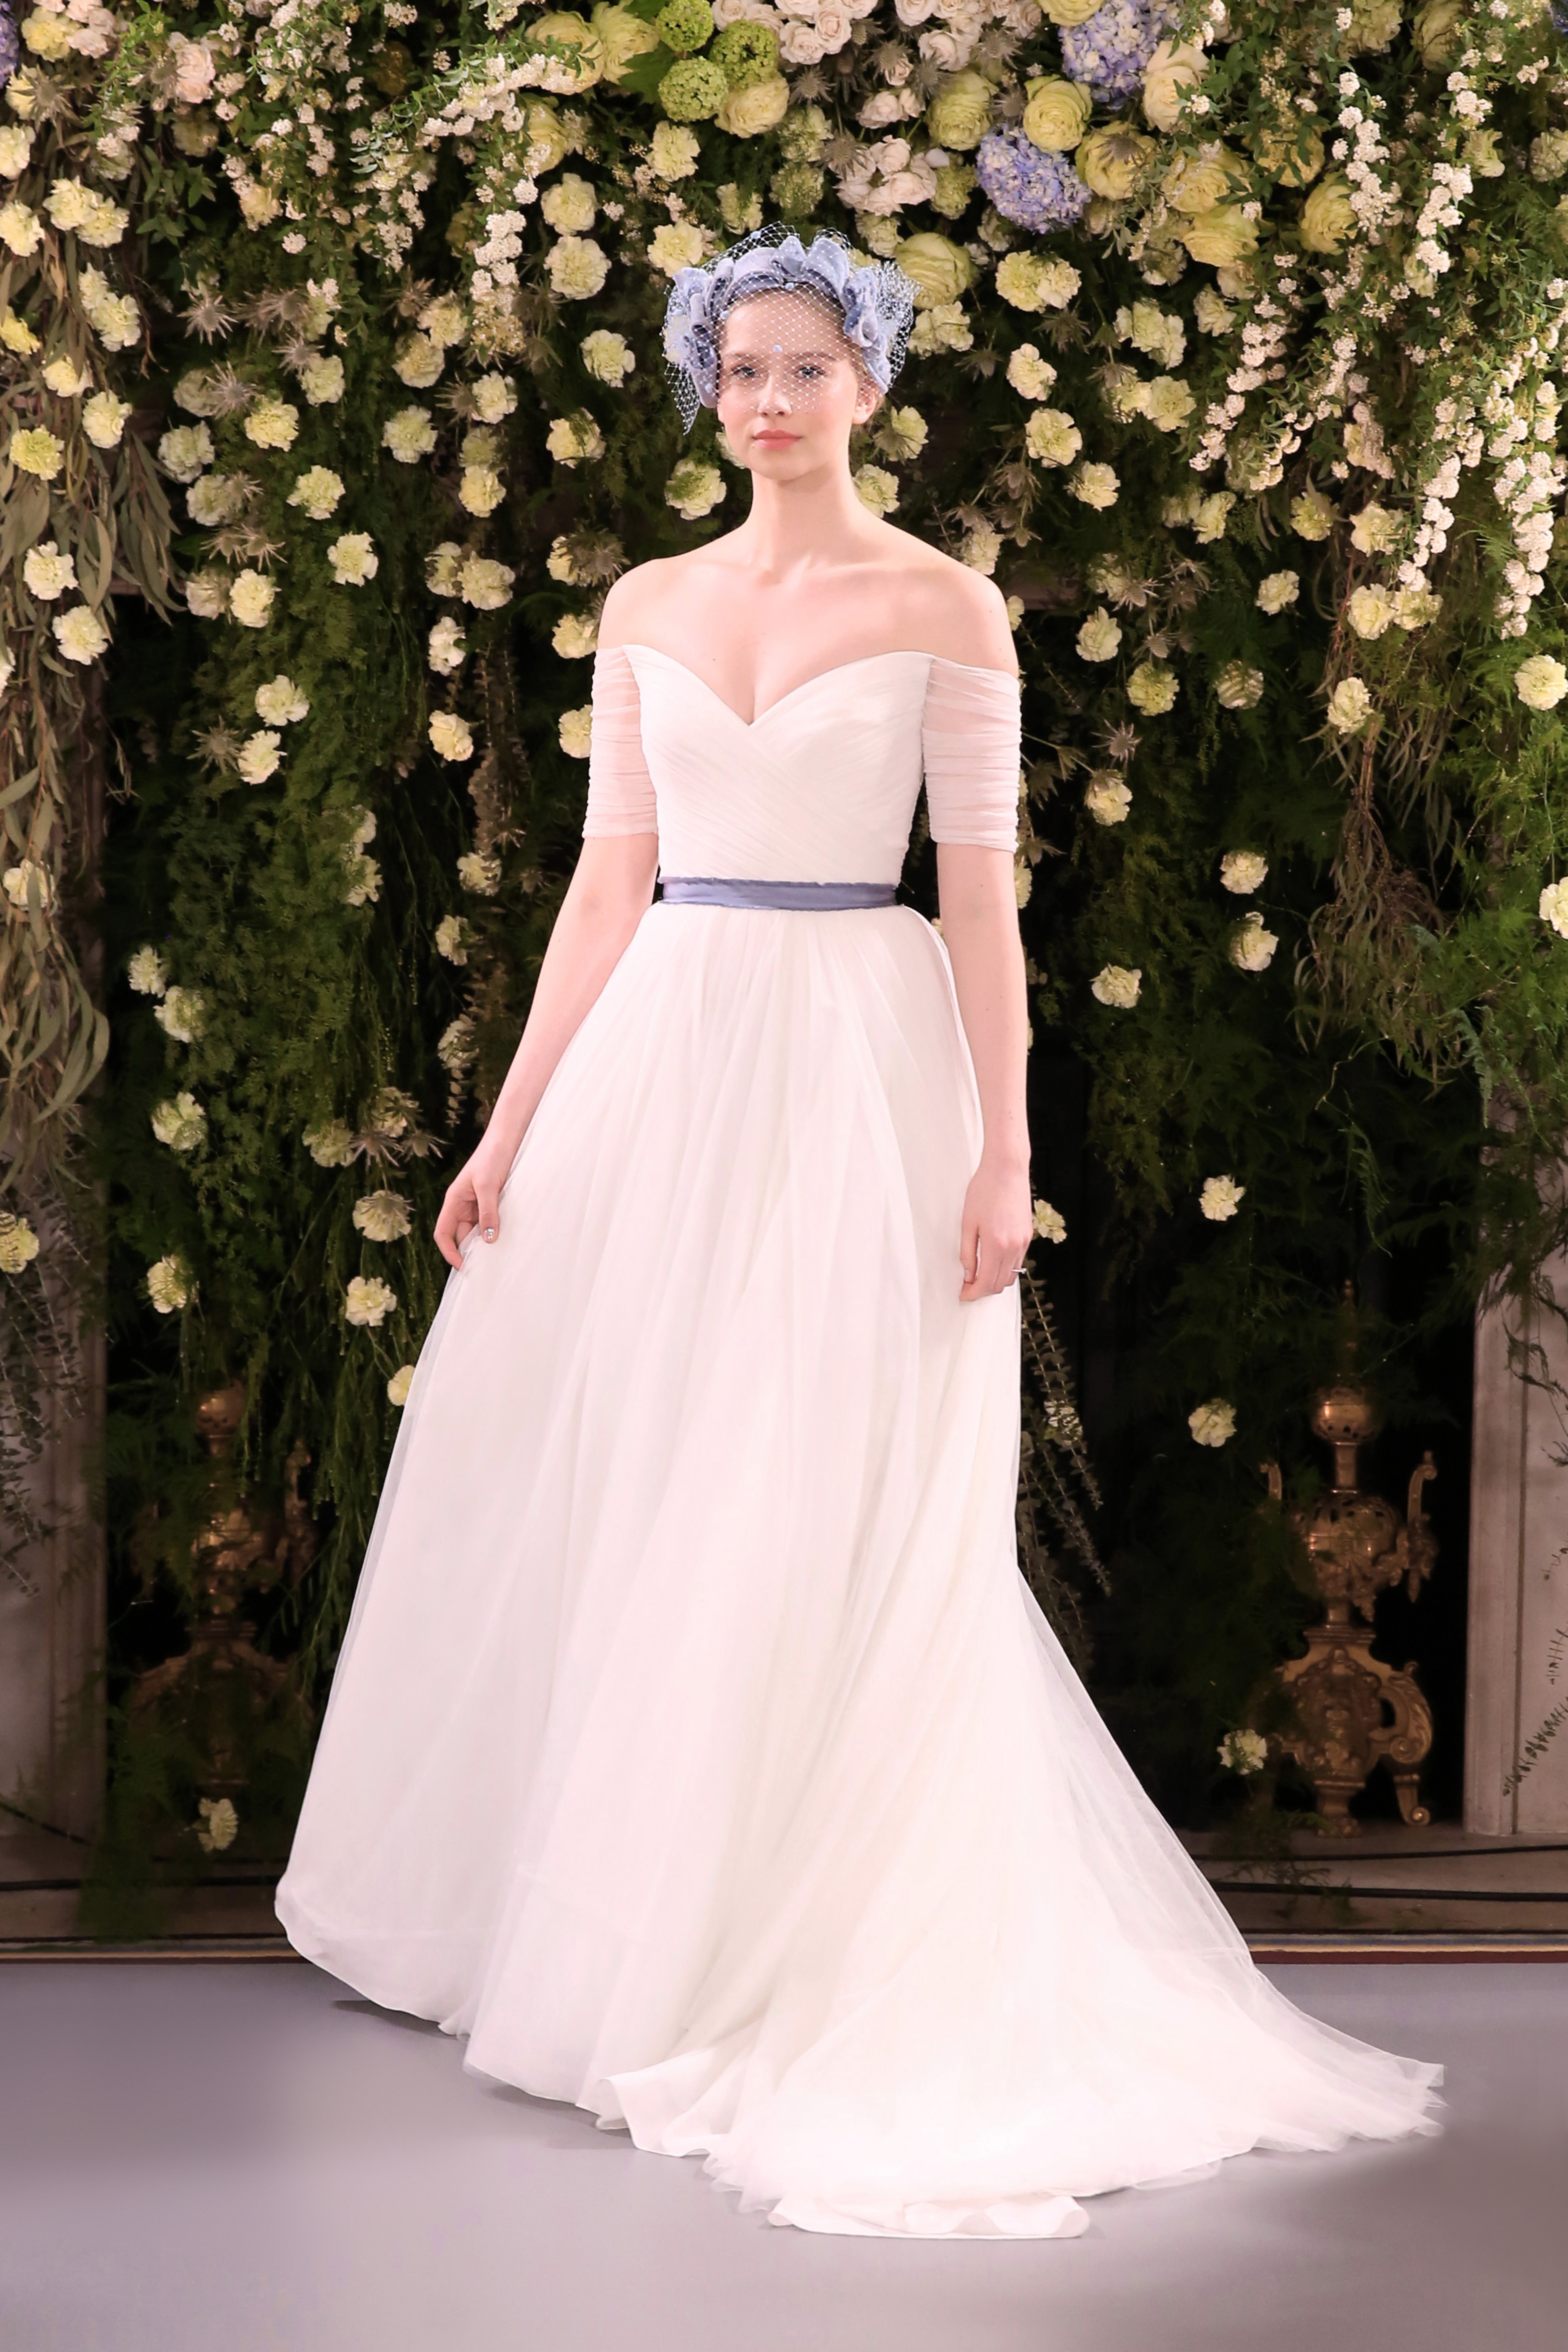 Jenny Packham\'s New Bridal Collection Features Kate Middleton Gowns